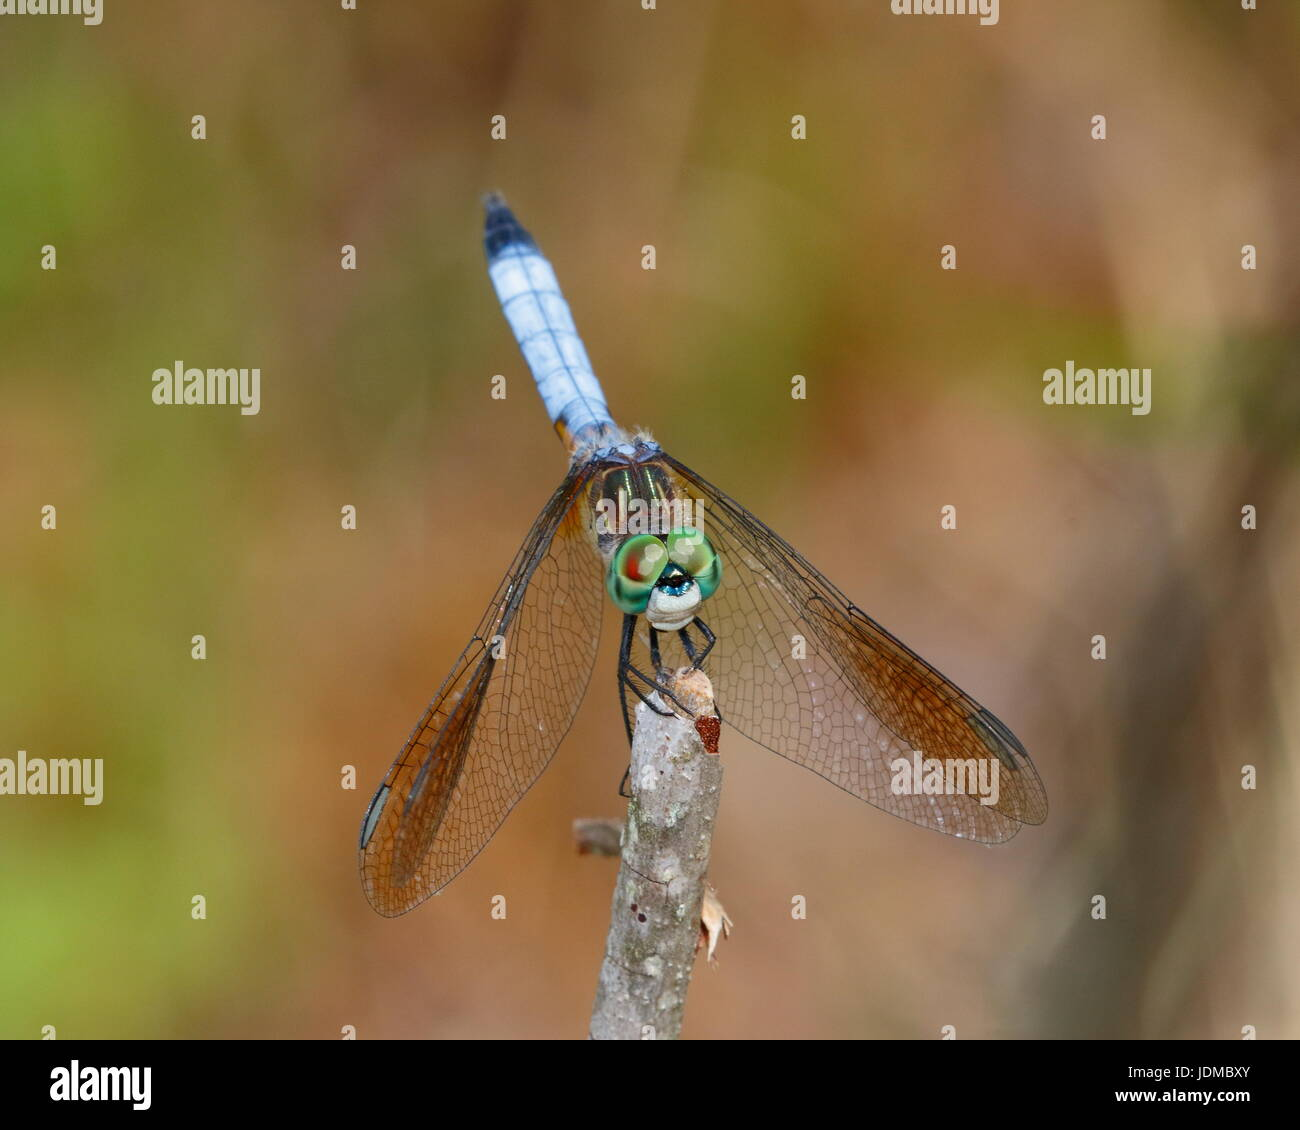 A male blue dasher dragonfly, Pachydiplax longipennis, rests on a twig. - Stock Image